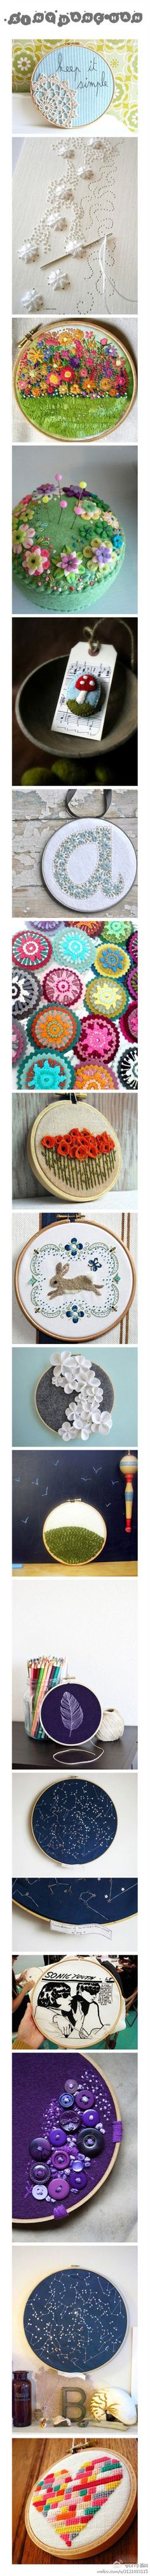 embroidery examples and uses!.